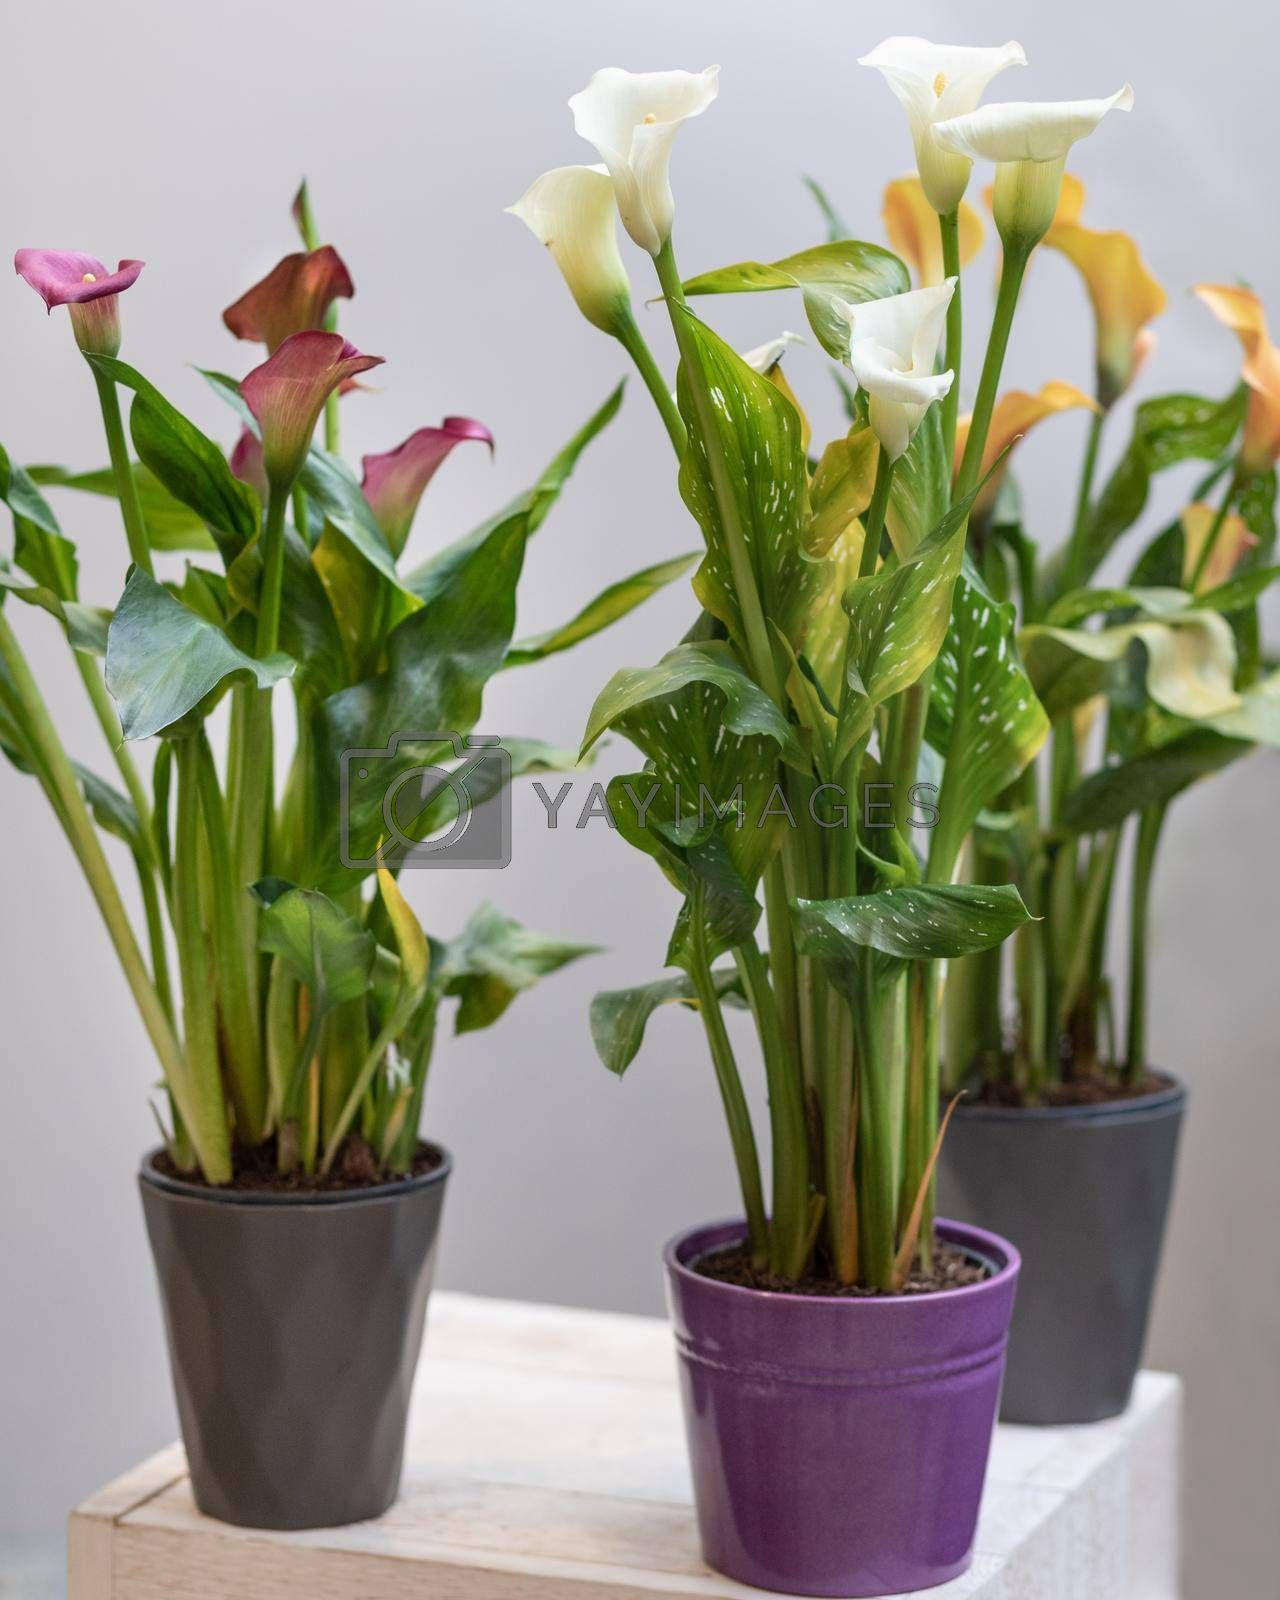 Colorful Arum lily flower plants